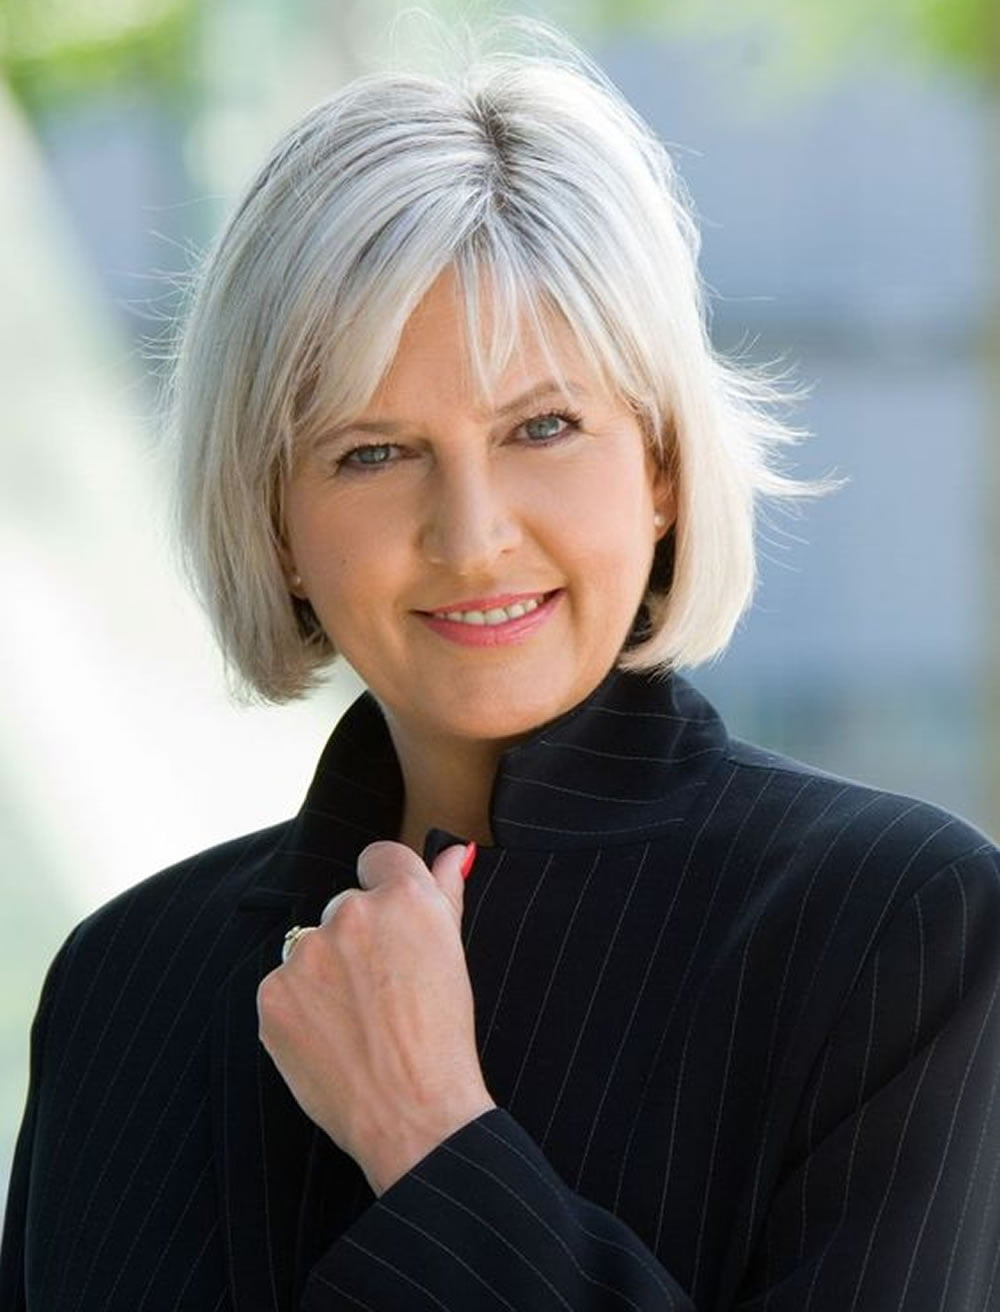 Hairstyles and Haircuts for Older Women Over 50